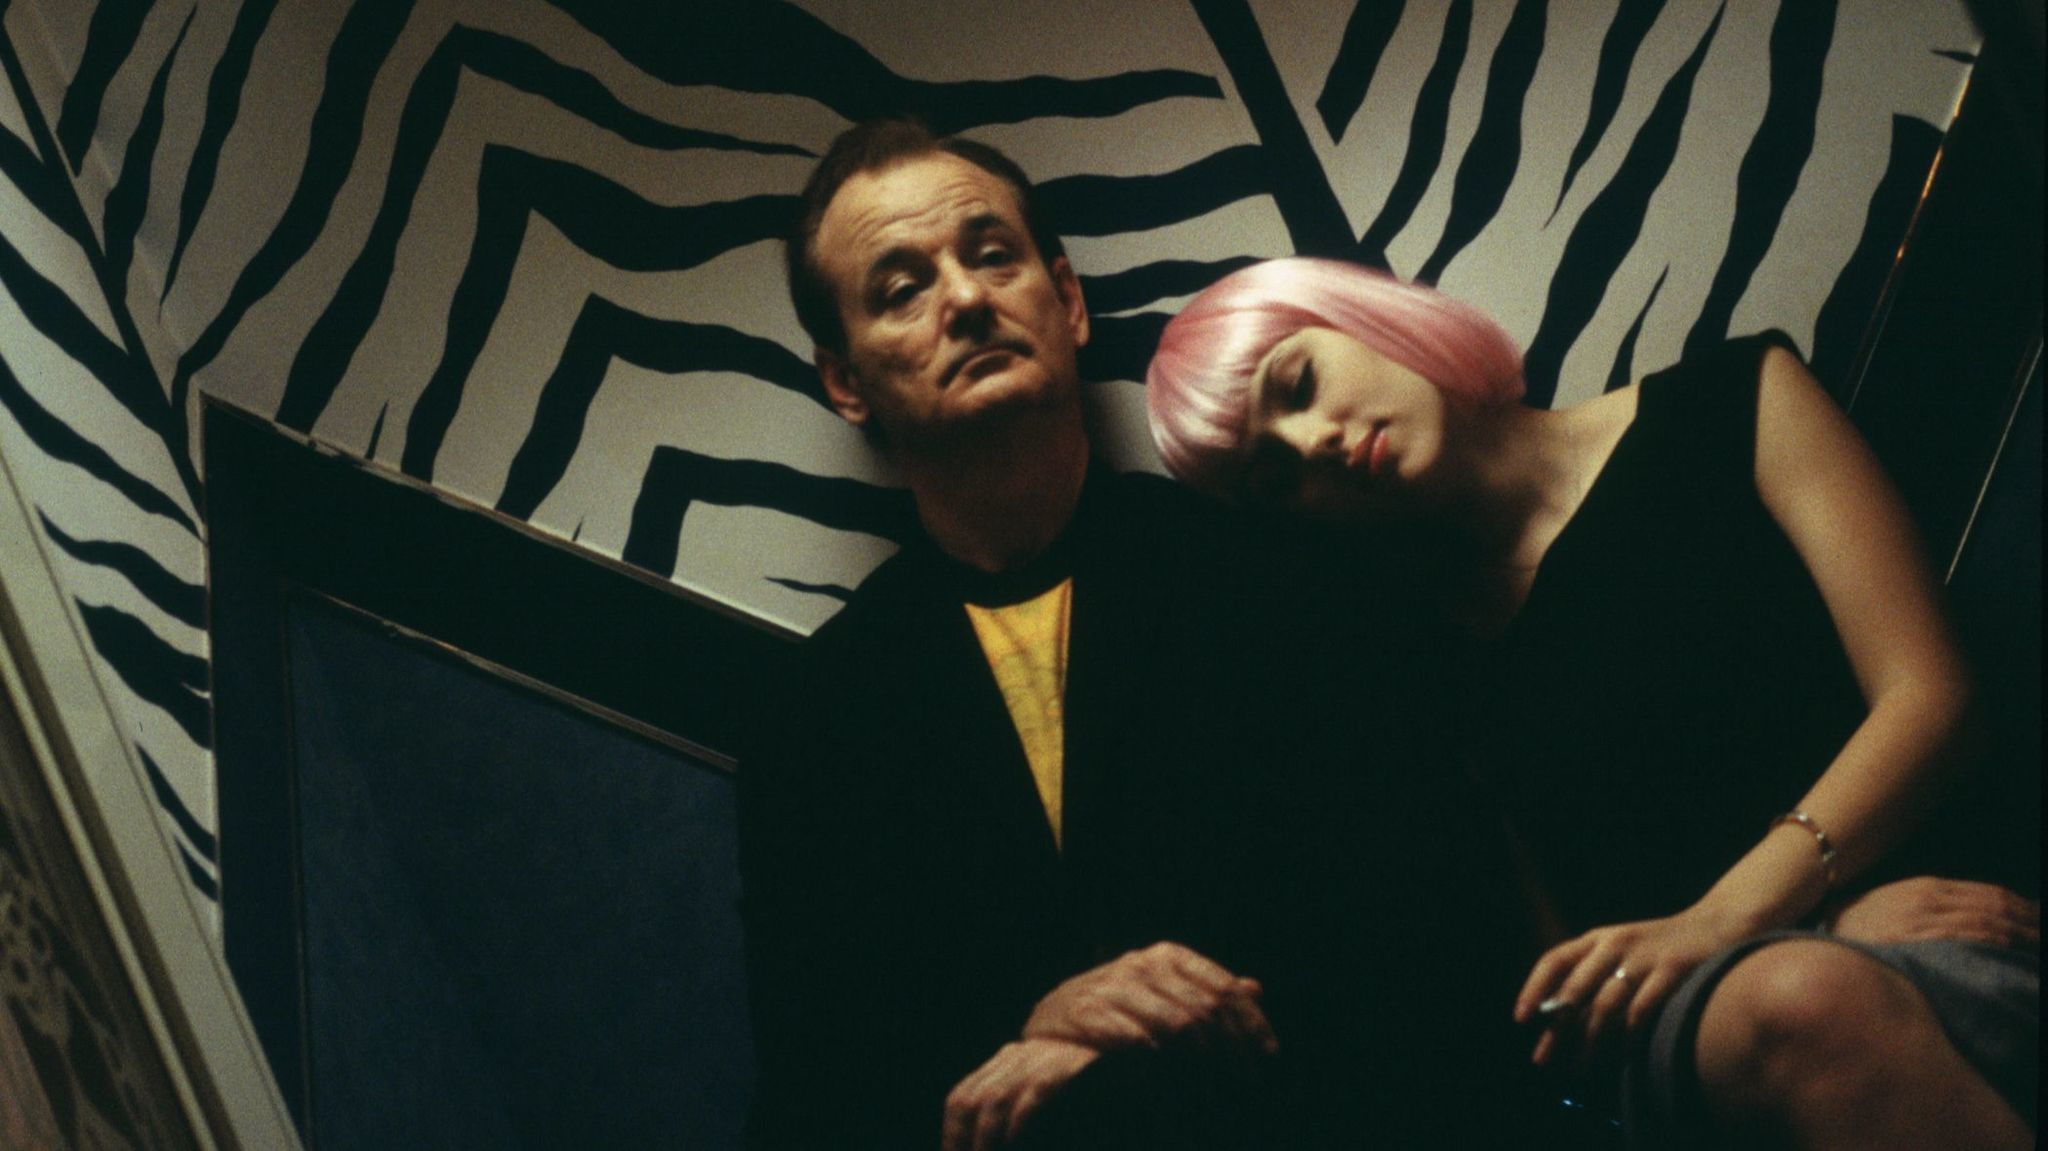 """The wallpaper behind Bill Murray and Scarlett Johansson in a scene from Sofia Coppola's 2003 film """"Lost in Translation"""" inspired a print under consideration for the spring 2018 William Murray Golf collection."""